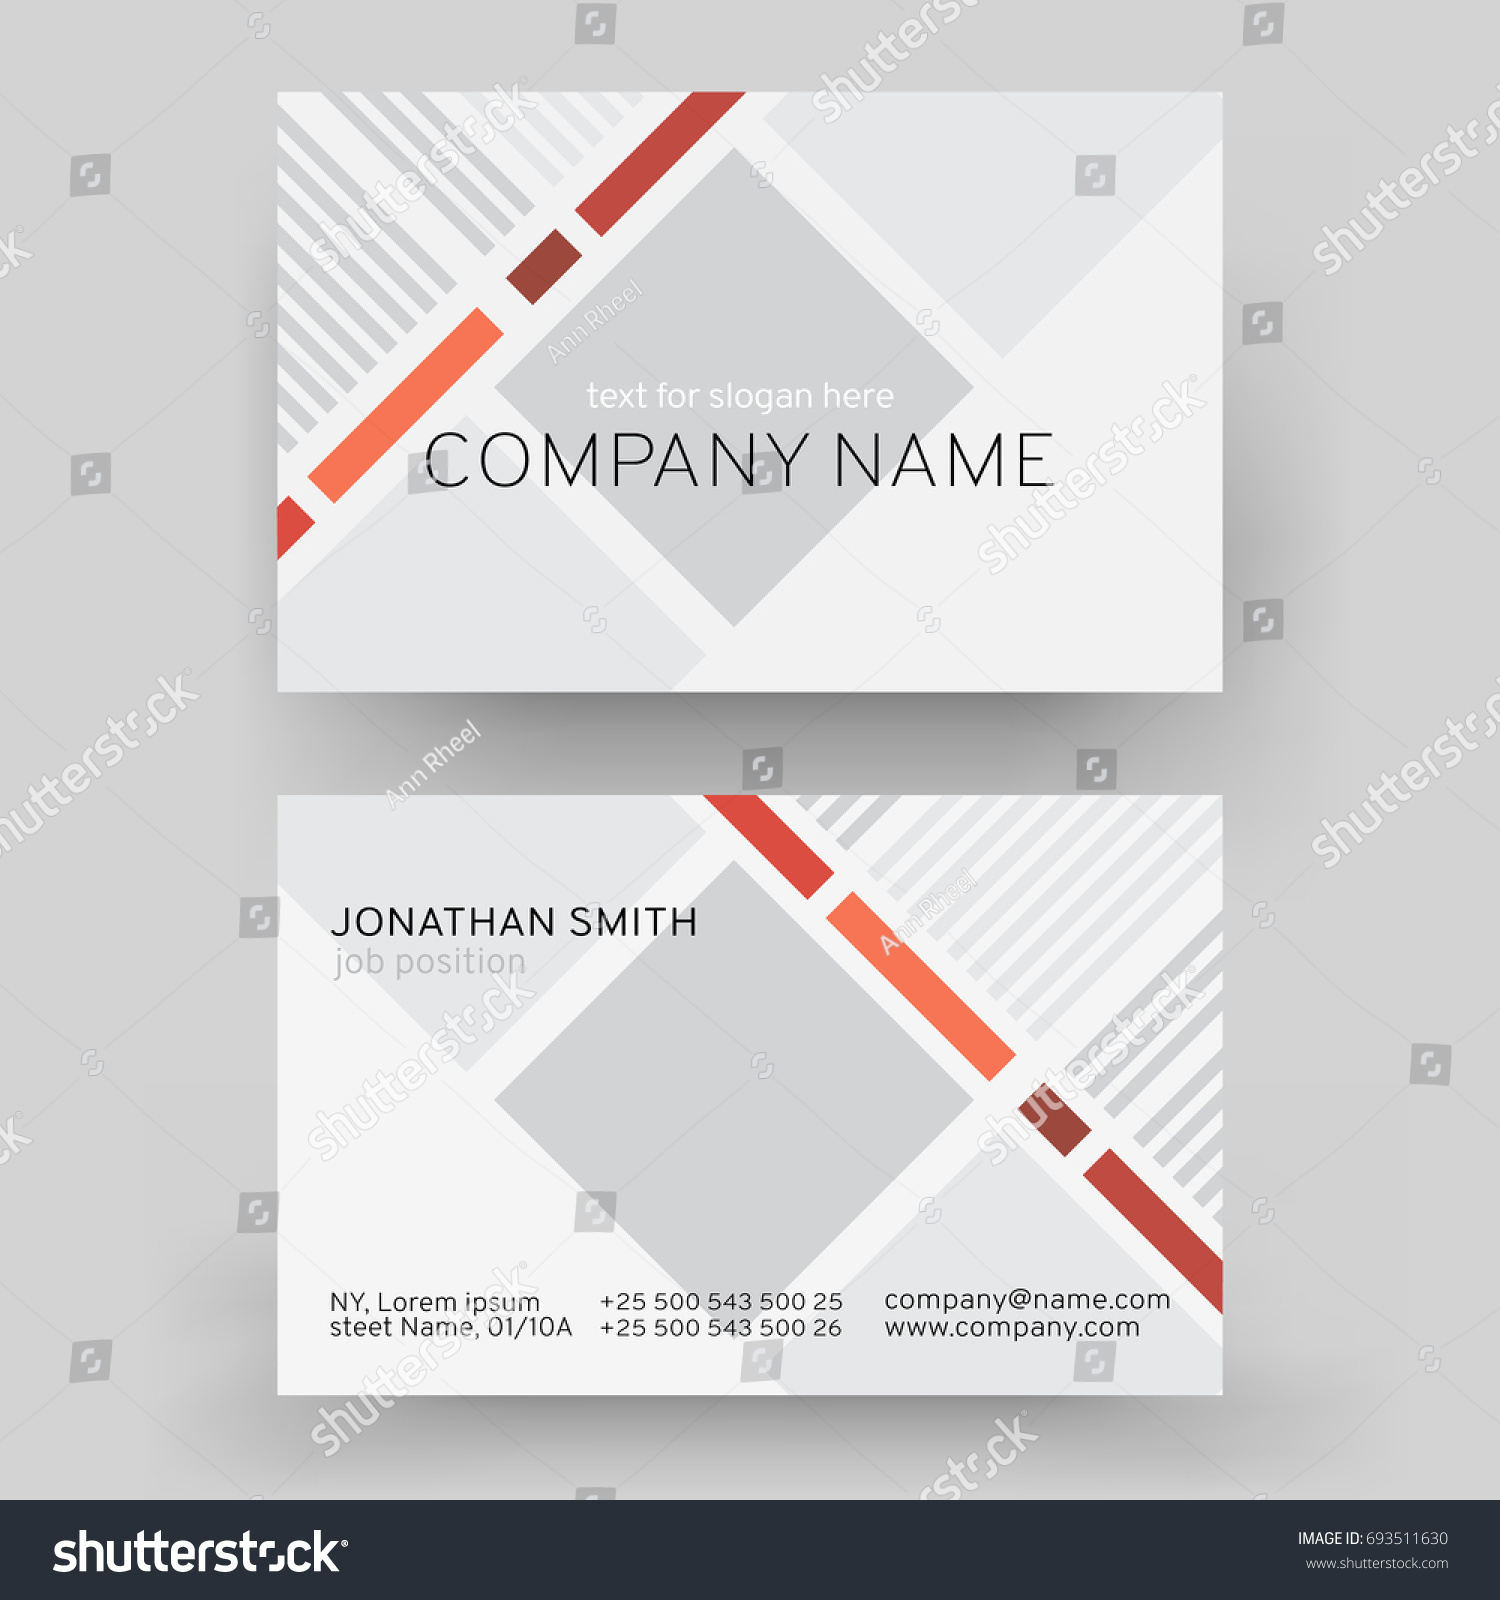 vector modern creative business card template stock vector 693511630 shutterstock. Black Bedroom Furniture Sets. Home Design Ideas